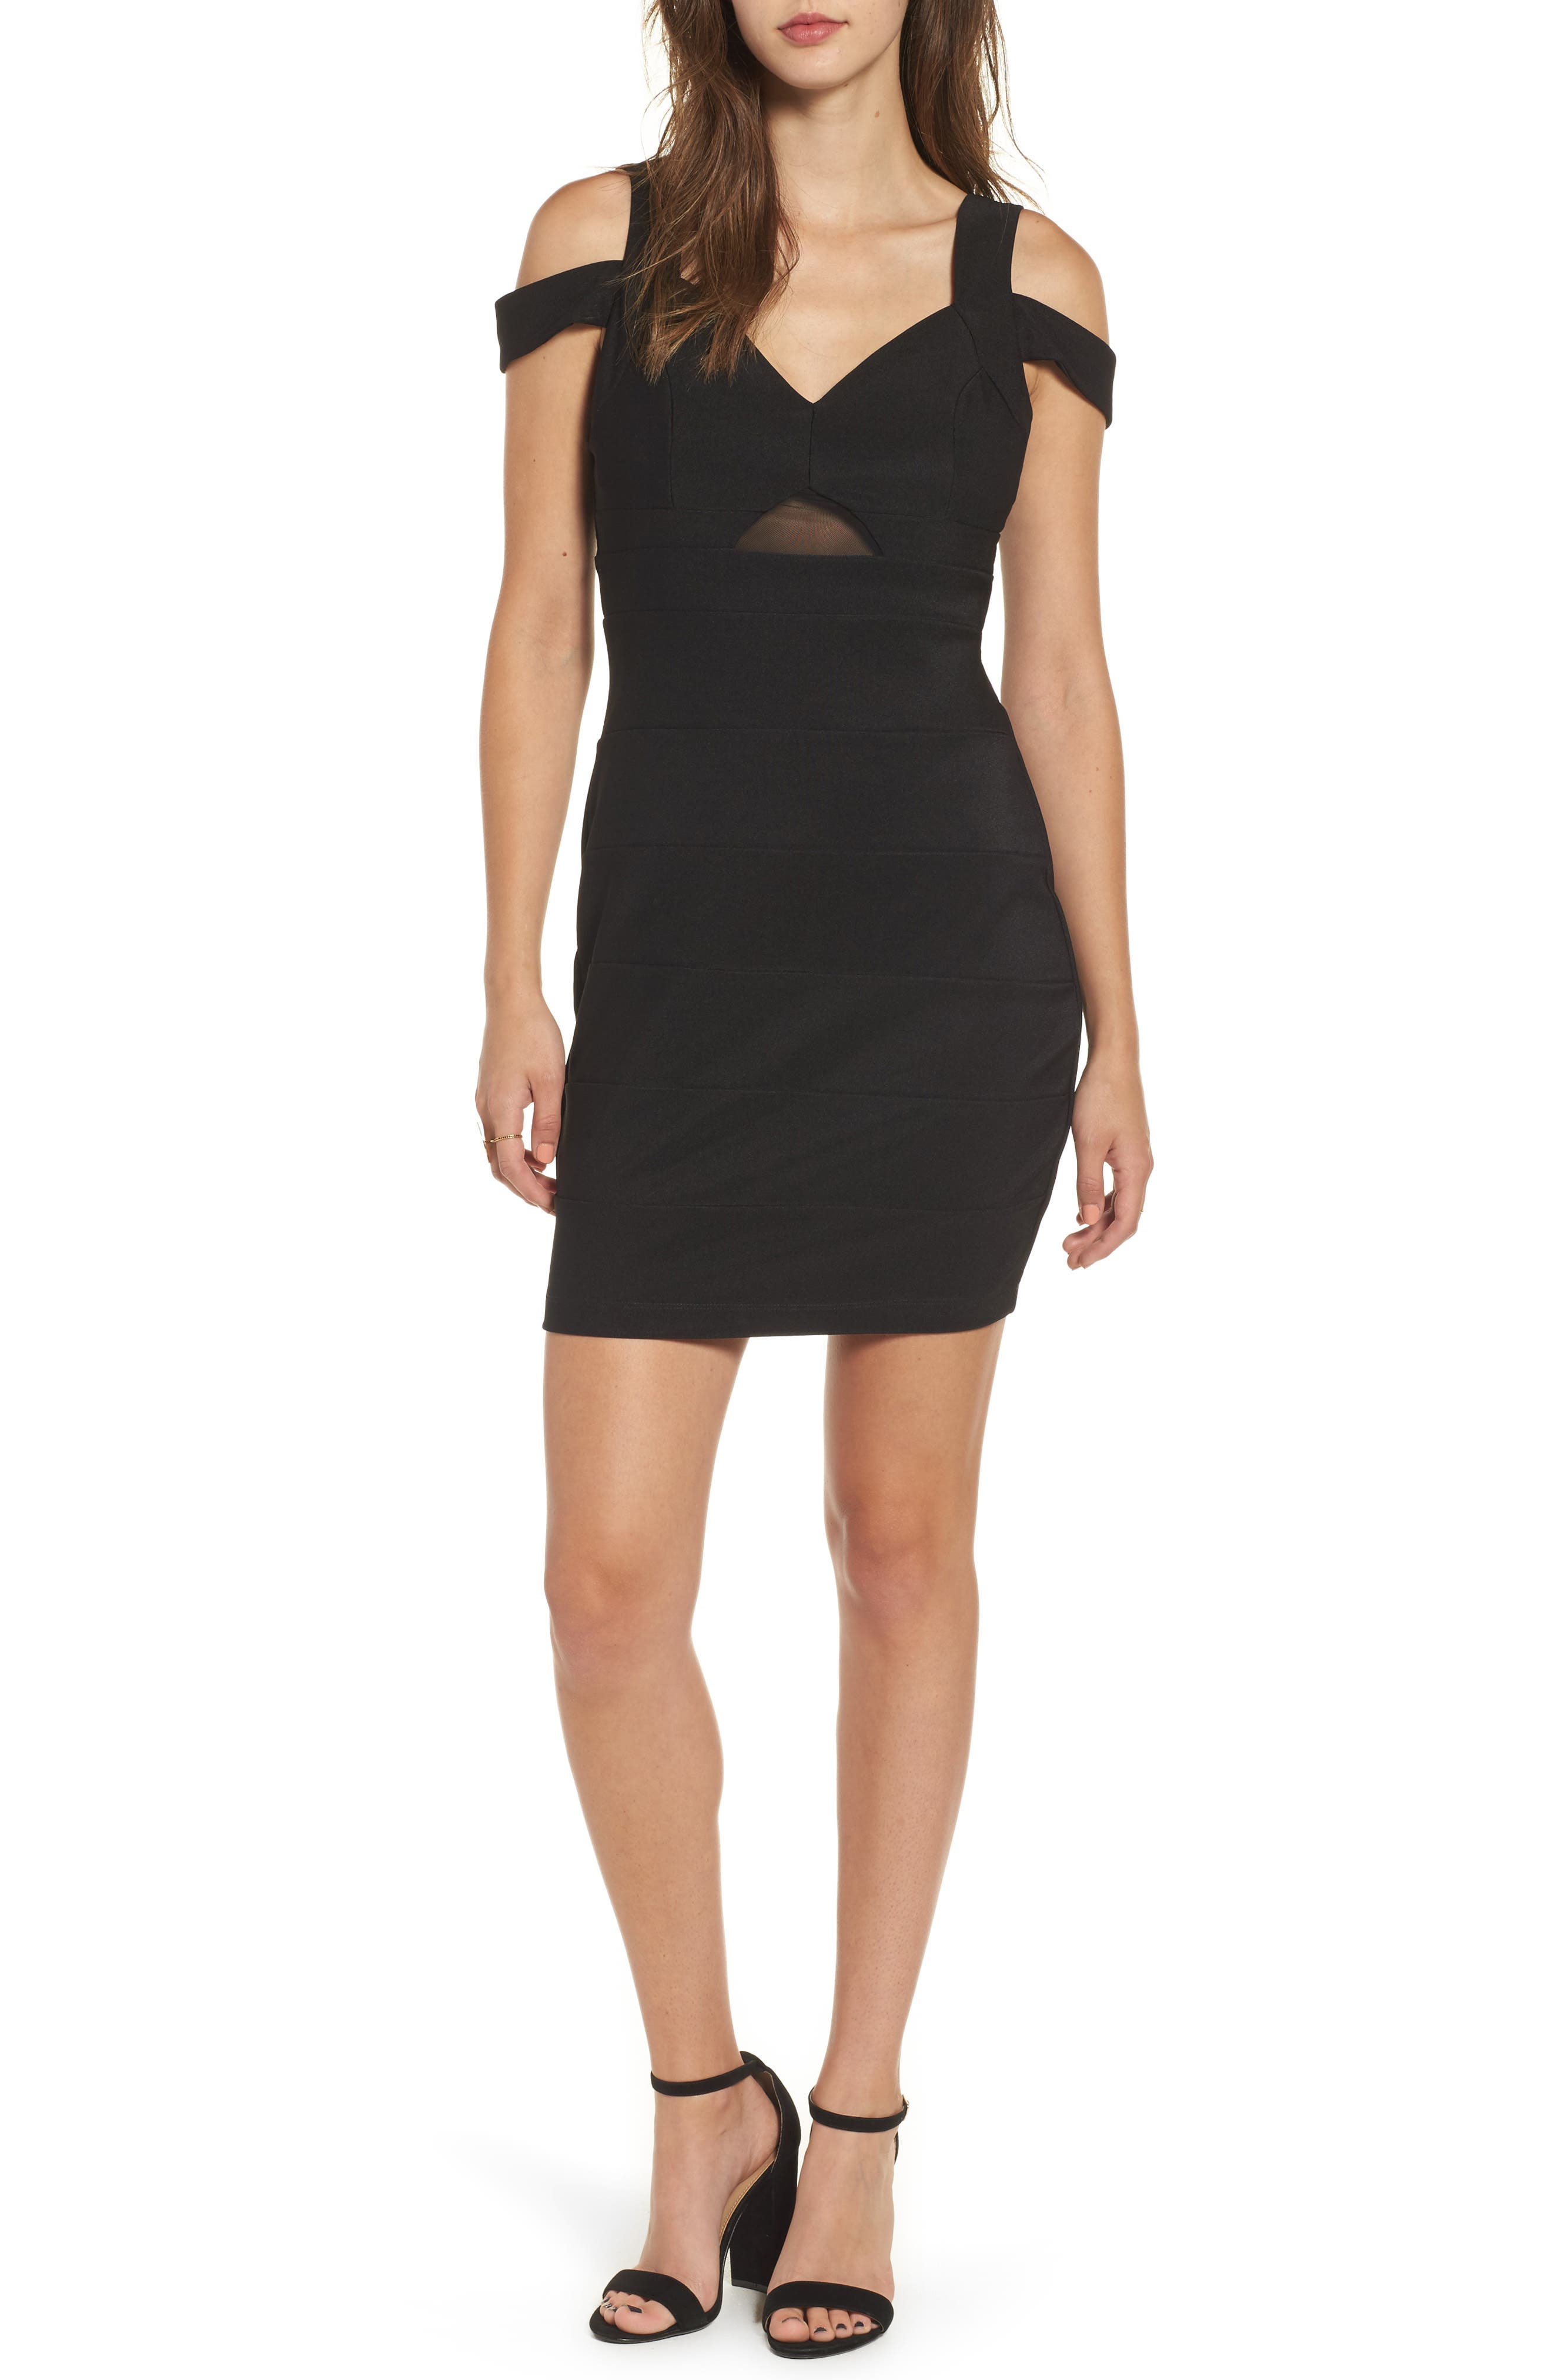 Love Nickie Lew Mesh Inset Body Con Dress